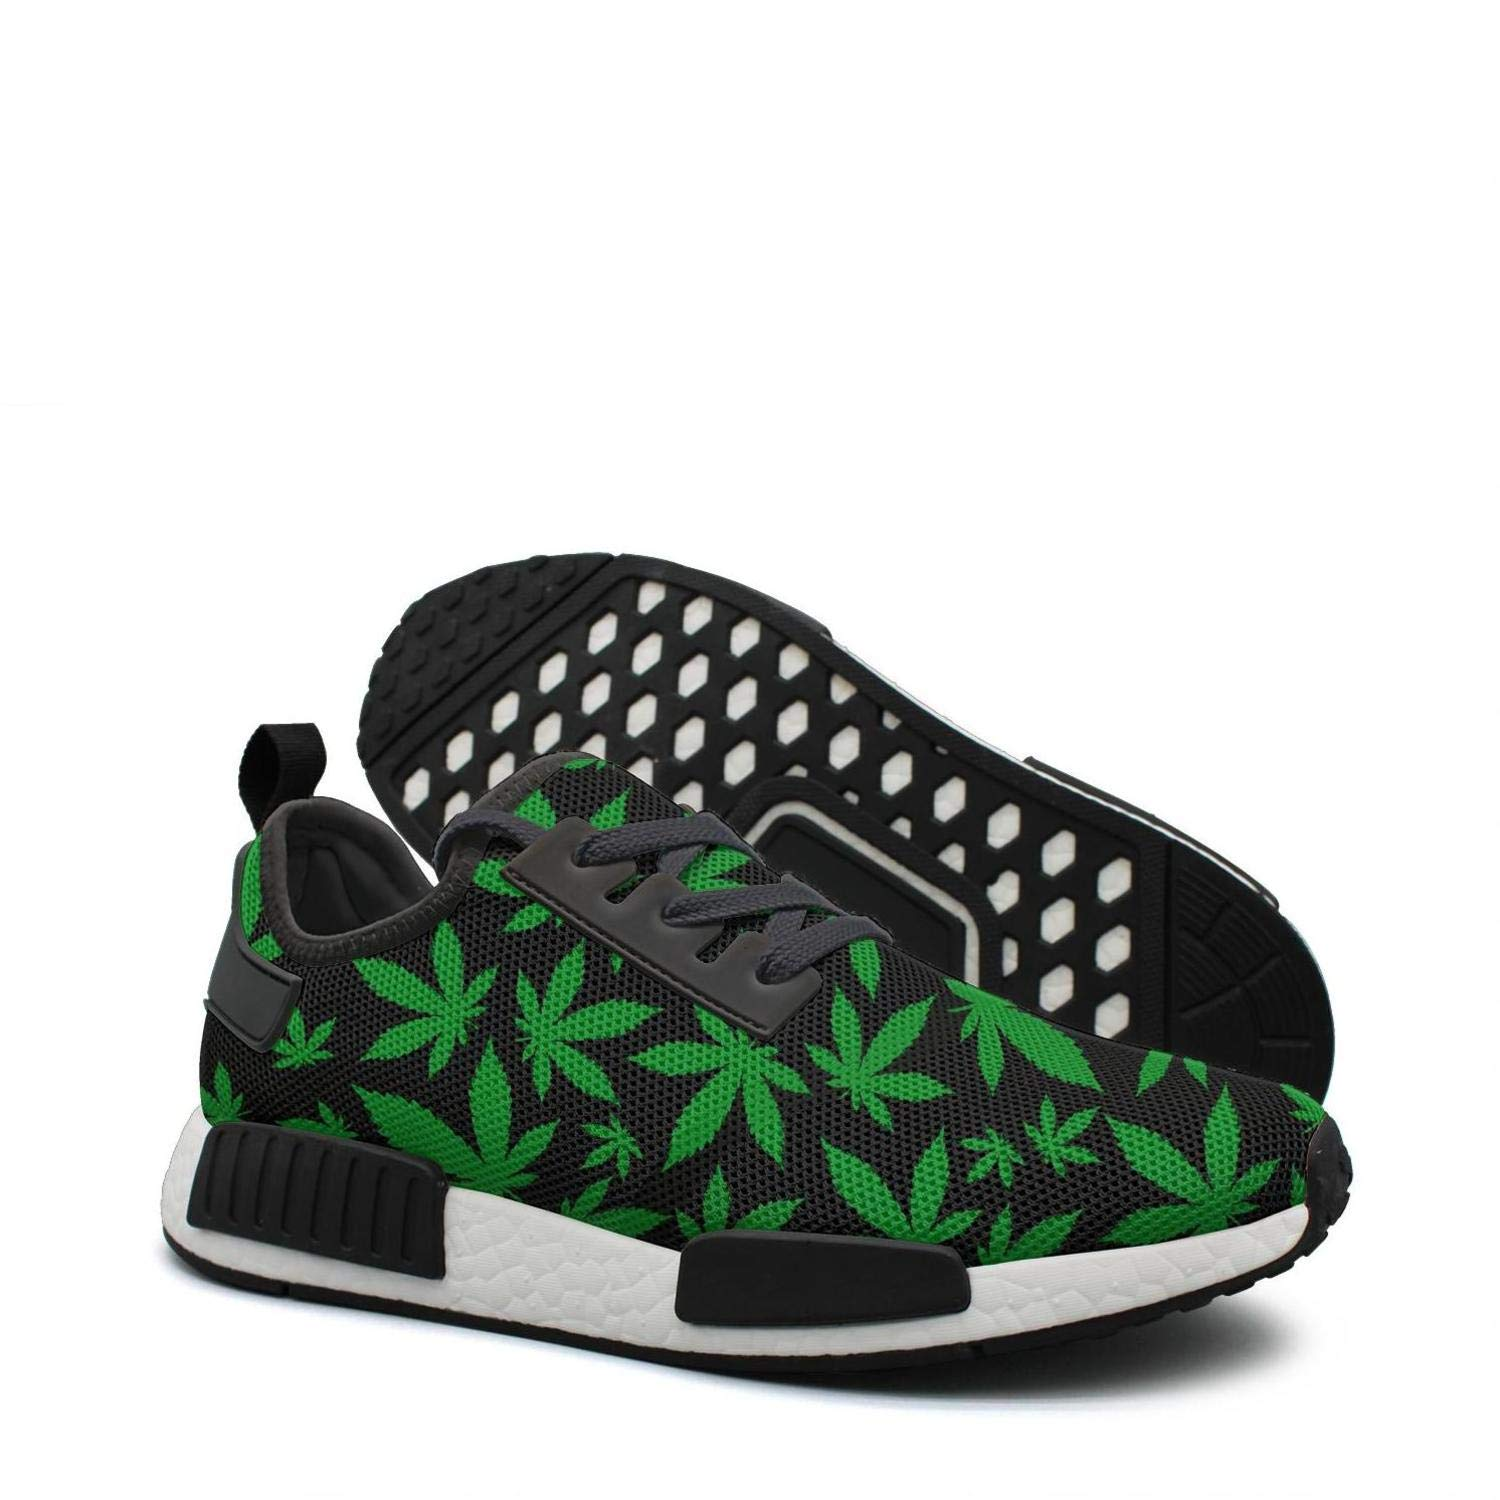 finest selection 4b3bb a2645 Amazon.com: Black Green Cannabis Leaf distance running shoes ...